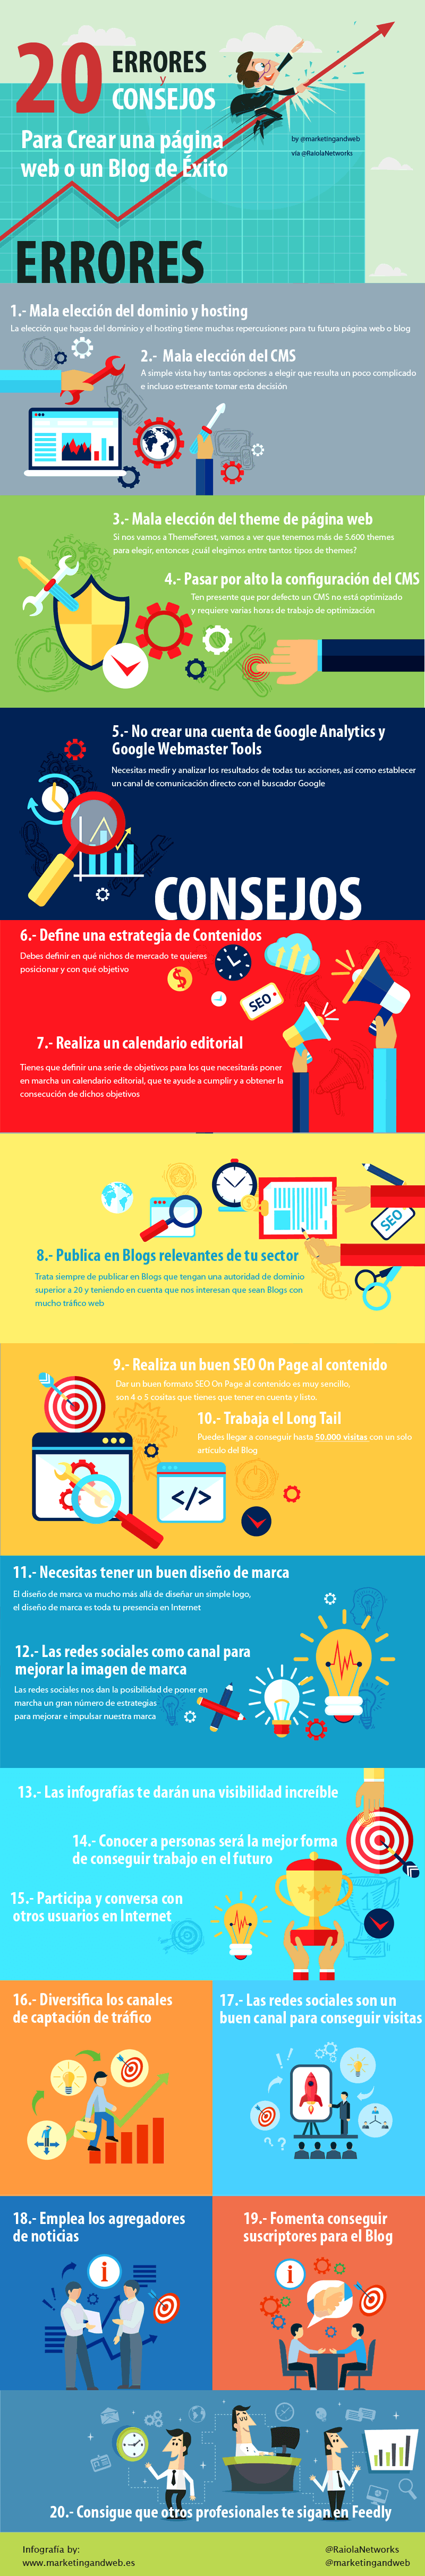 20 Errores Y Consejos Para Crear Una Web Blog De éxito Infografia Marketing Comunicacion Y Marketing Estrategias De Marketing Y Desarrollo De Paginas Web